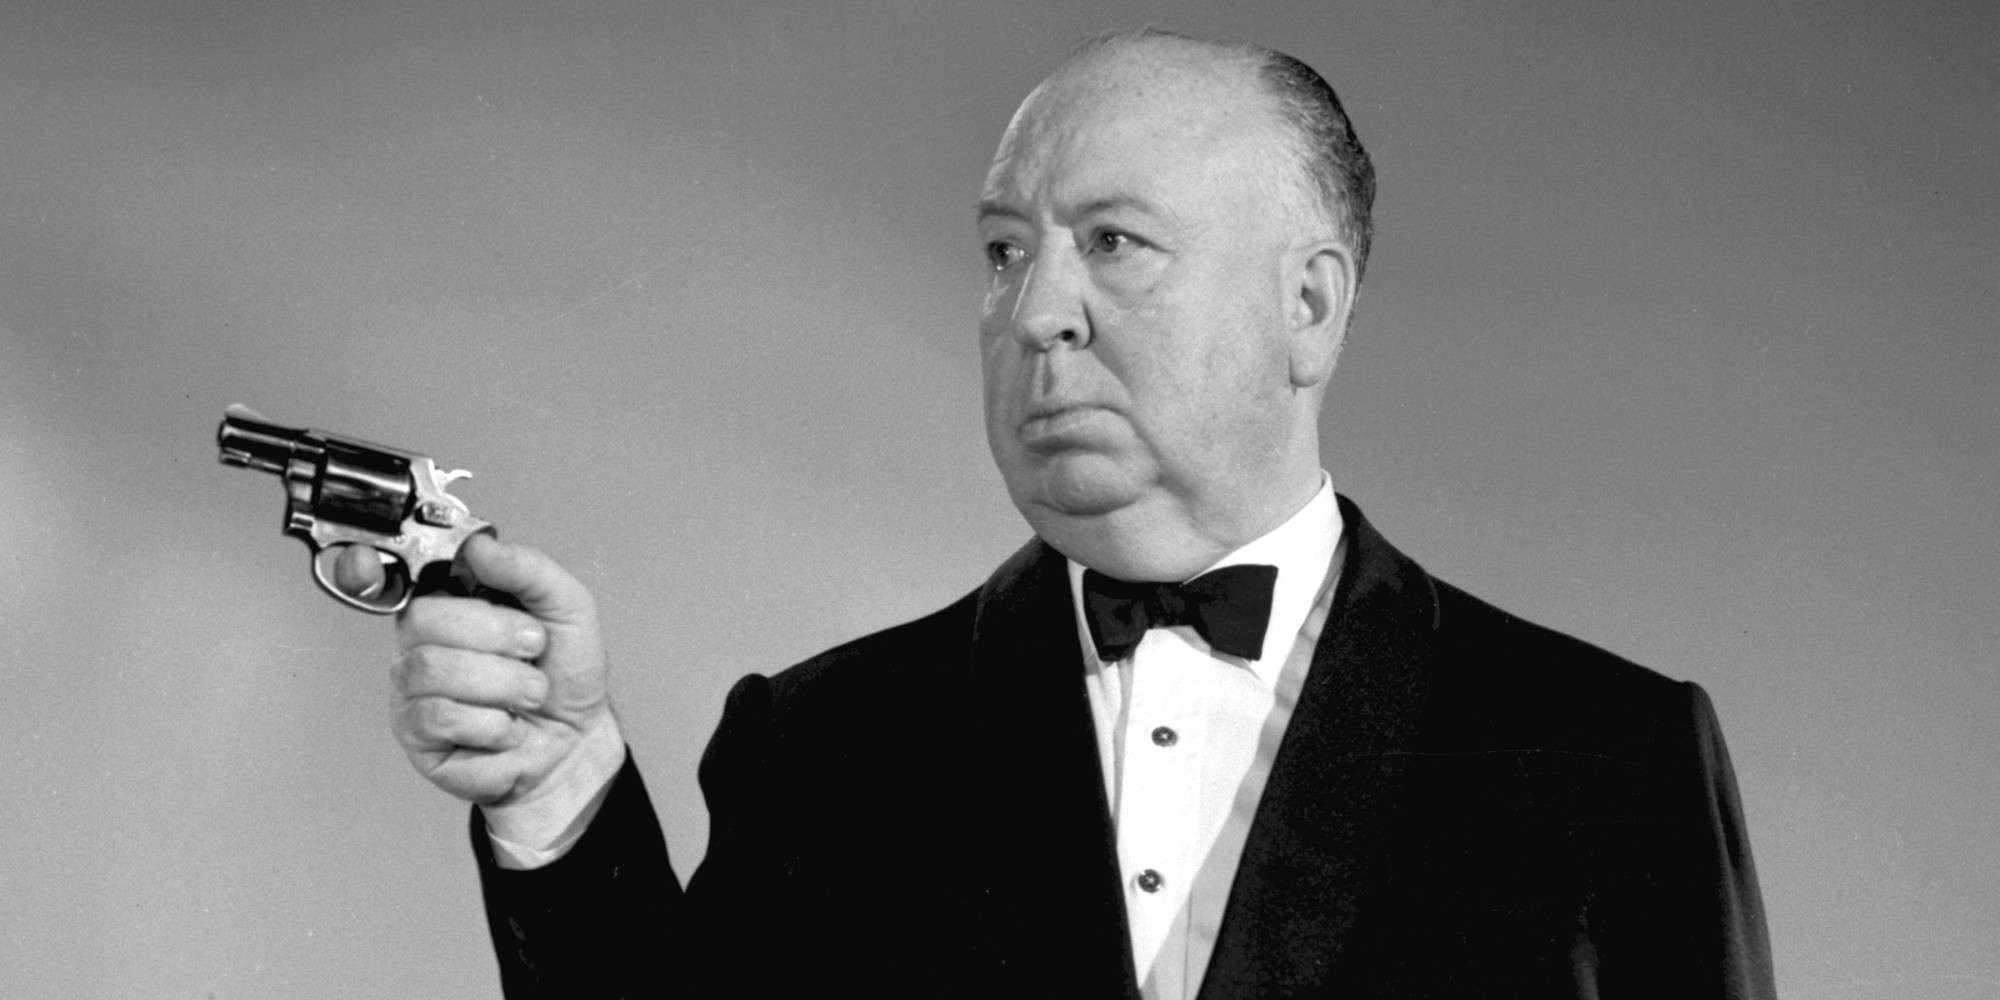 an analysis of alfred hitchcocks horror story the knife In psycho, alfred hitchcock subverts the narrative expectations laid out in the early parts of the film, producing something very different from the suspense film that we anticipate.